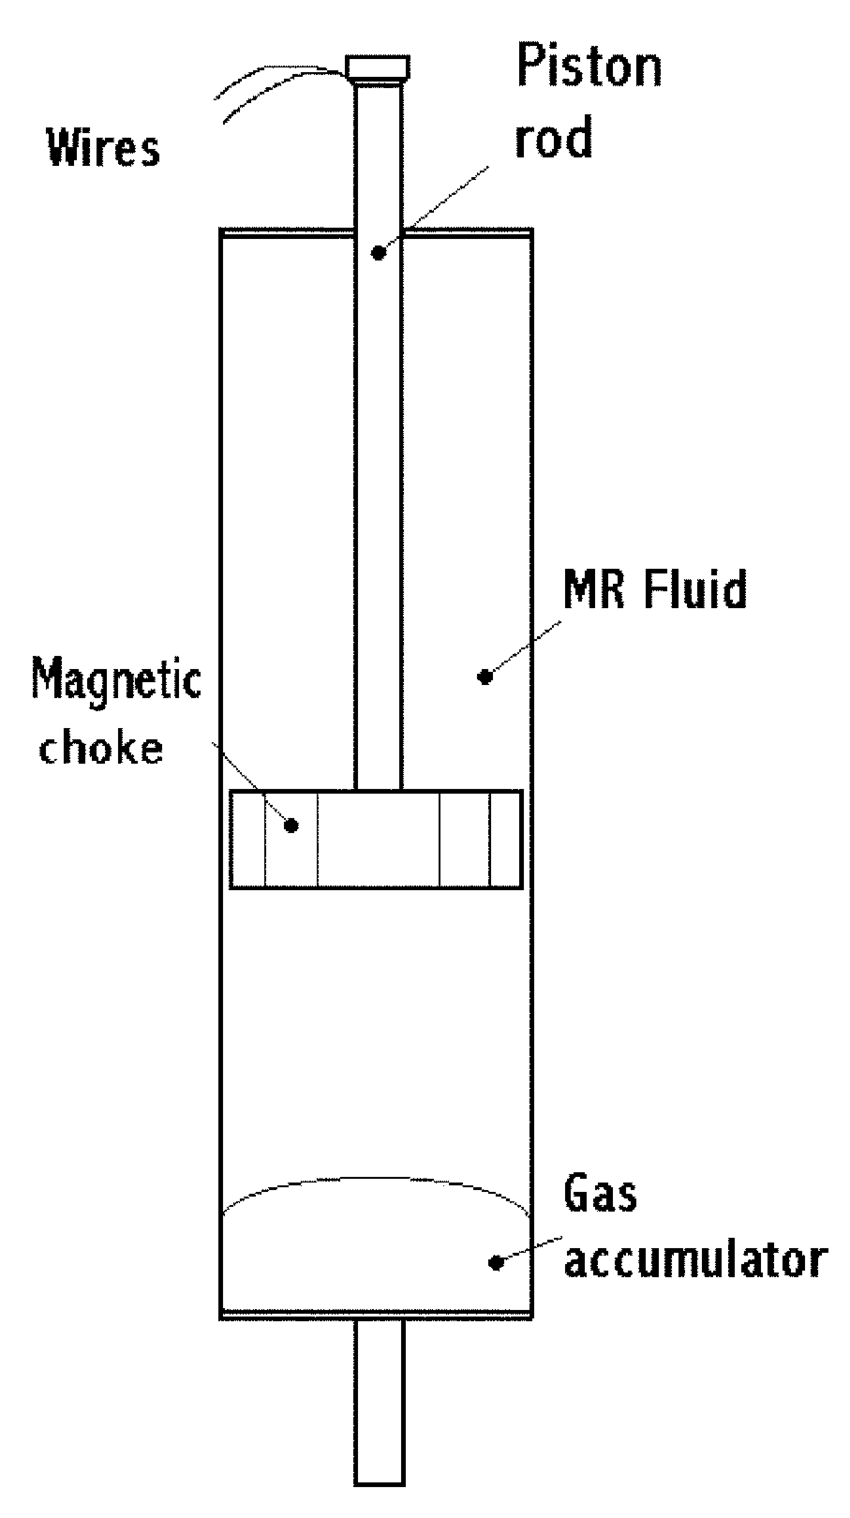 hight resolution of schematic of the mrd